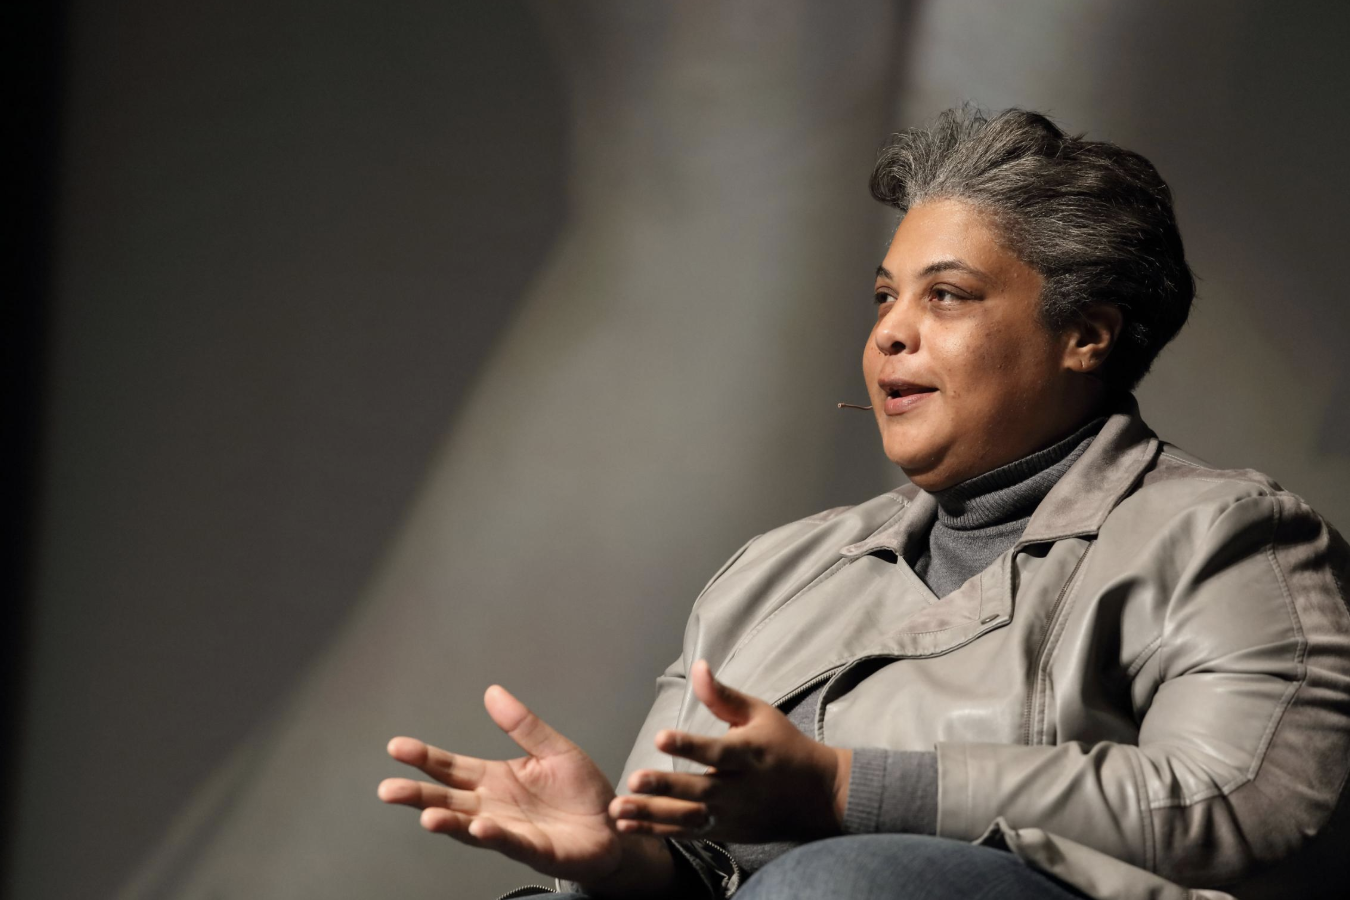 Author and cultural critic Roxane Gay